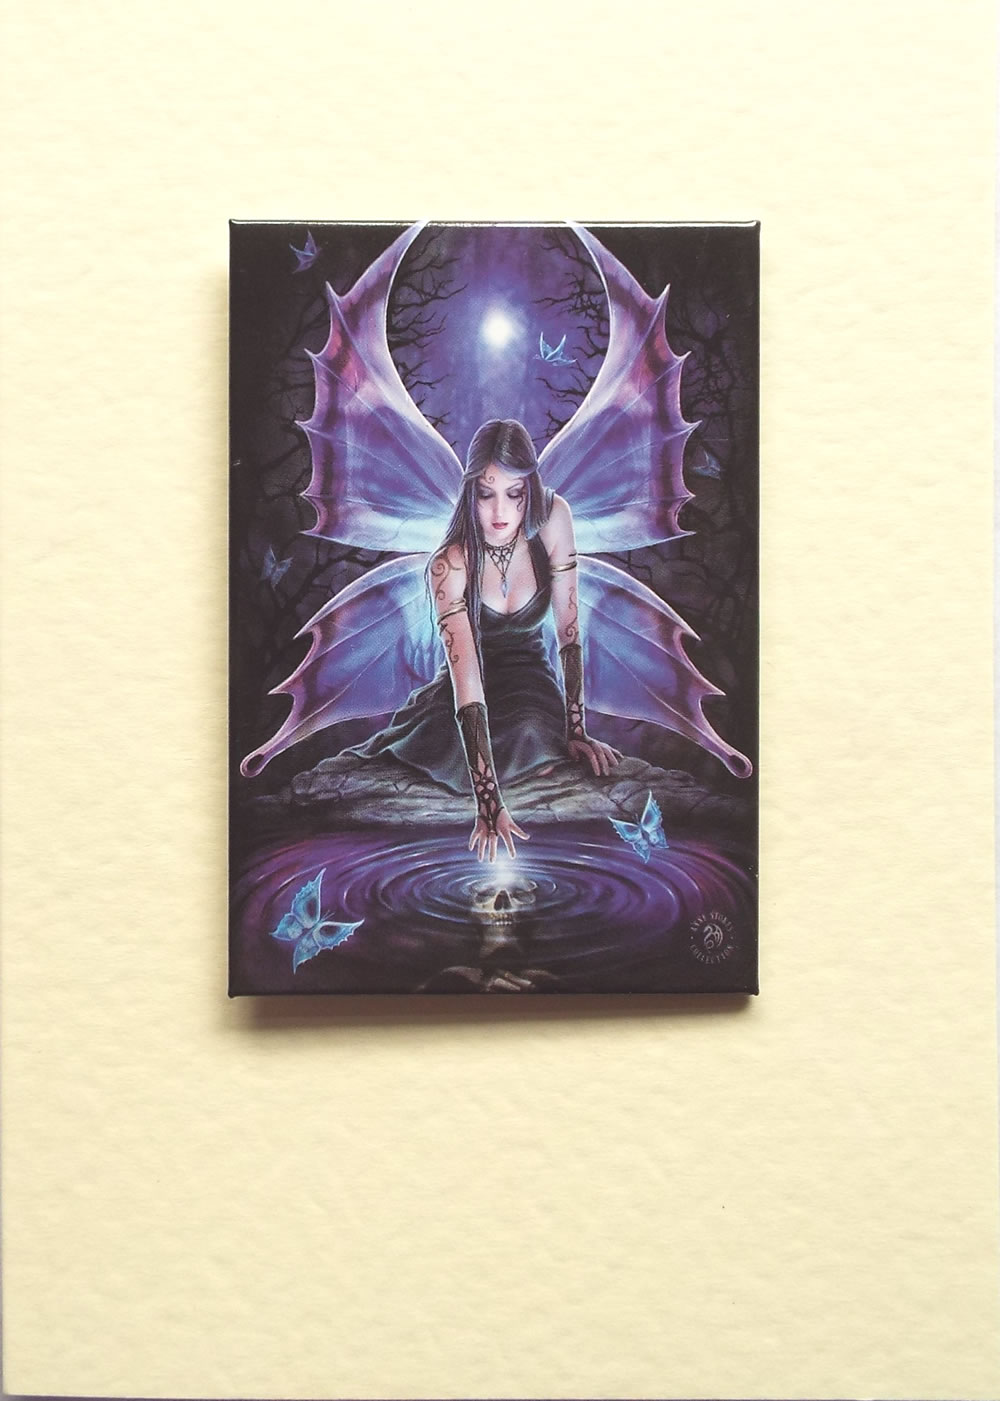 Immortal flight greetings card by anne stokes with detachable magnet crystal fairy greetings card by anne stokes with detachable magnet m4hsunfo